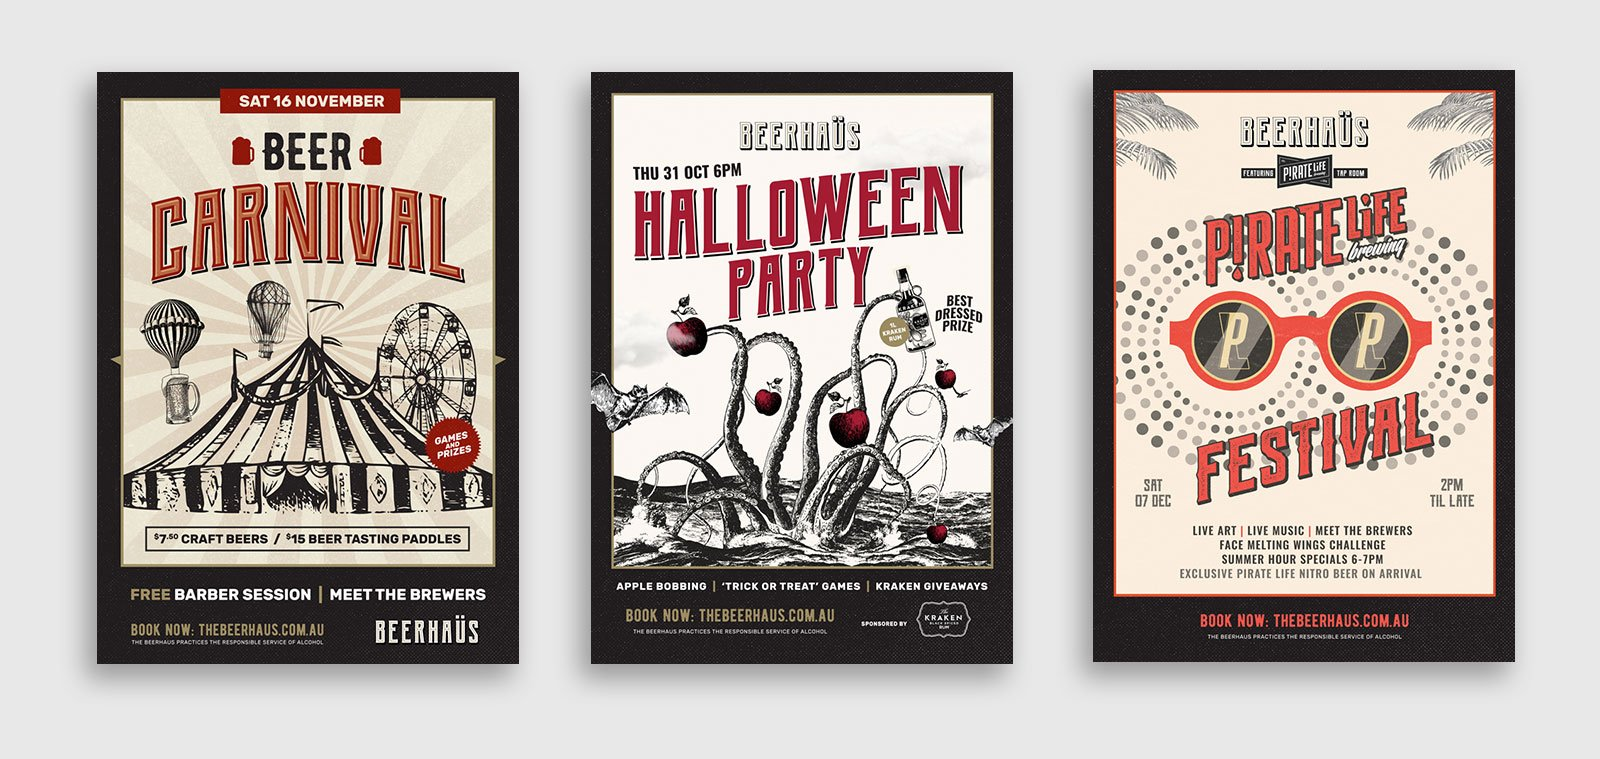 Three poster designs for Beerhaus